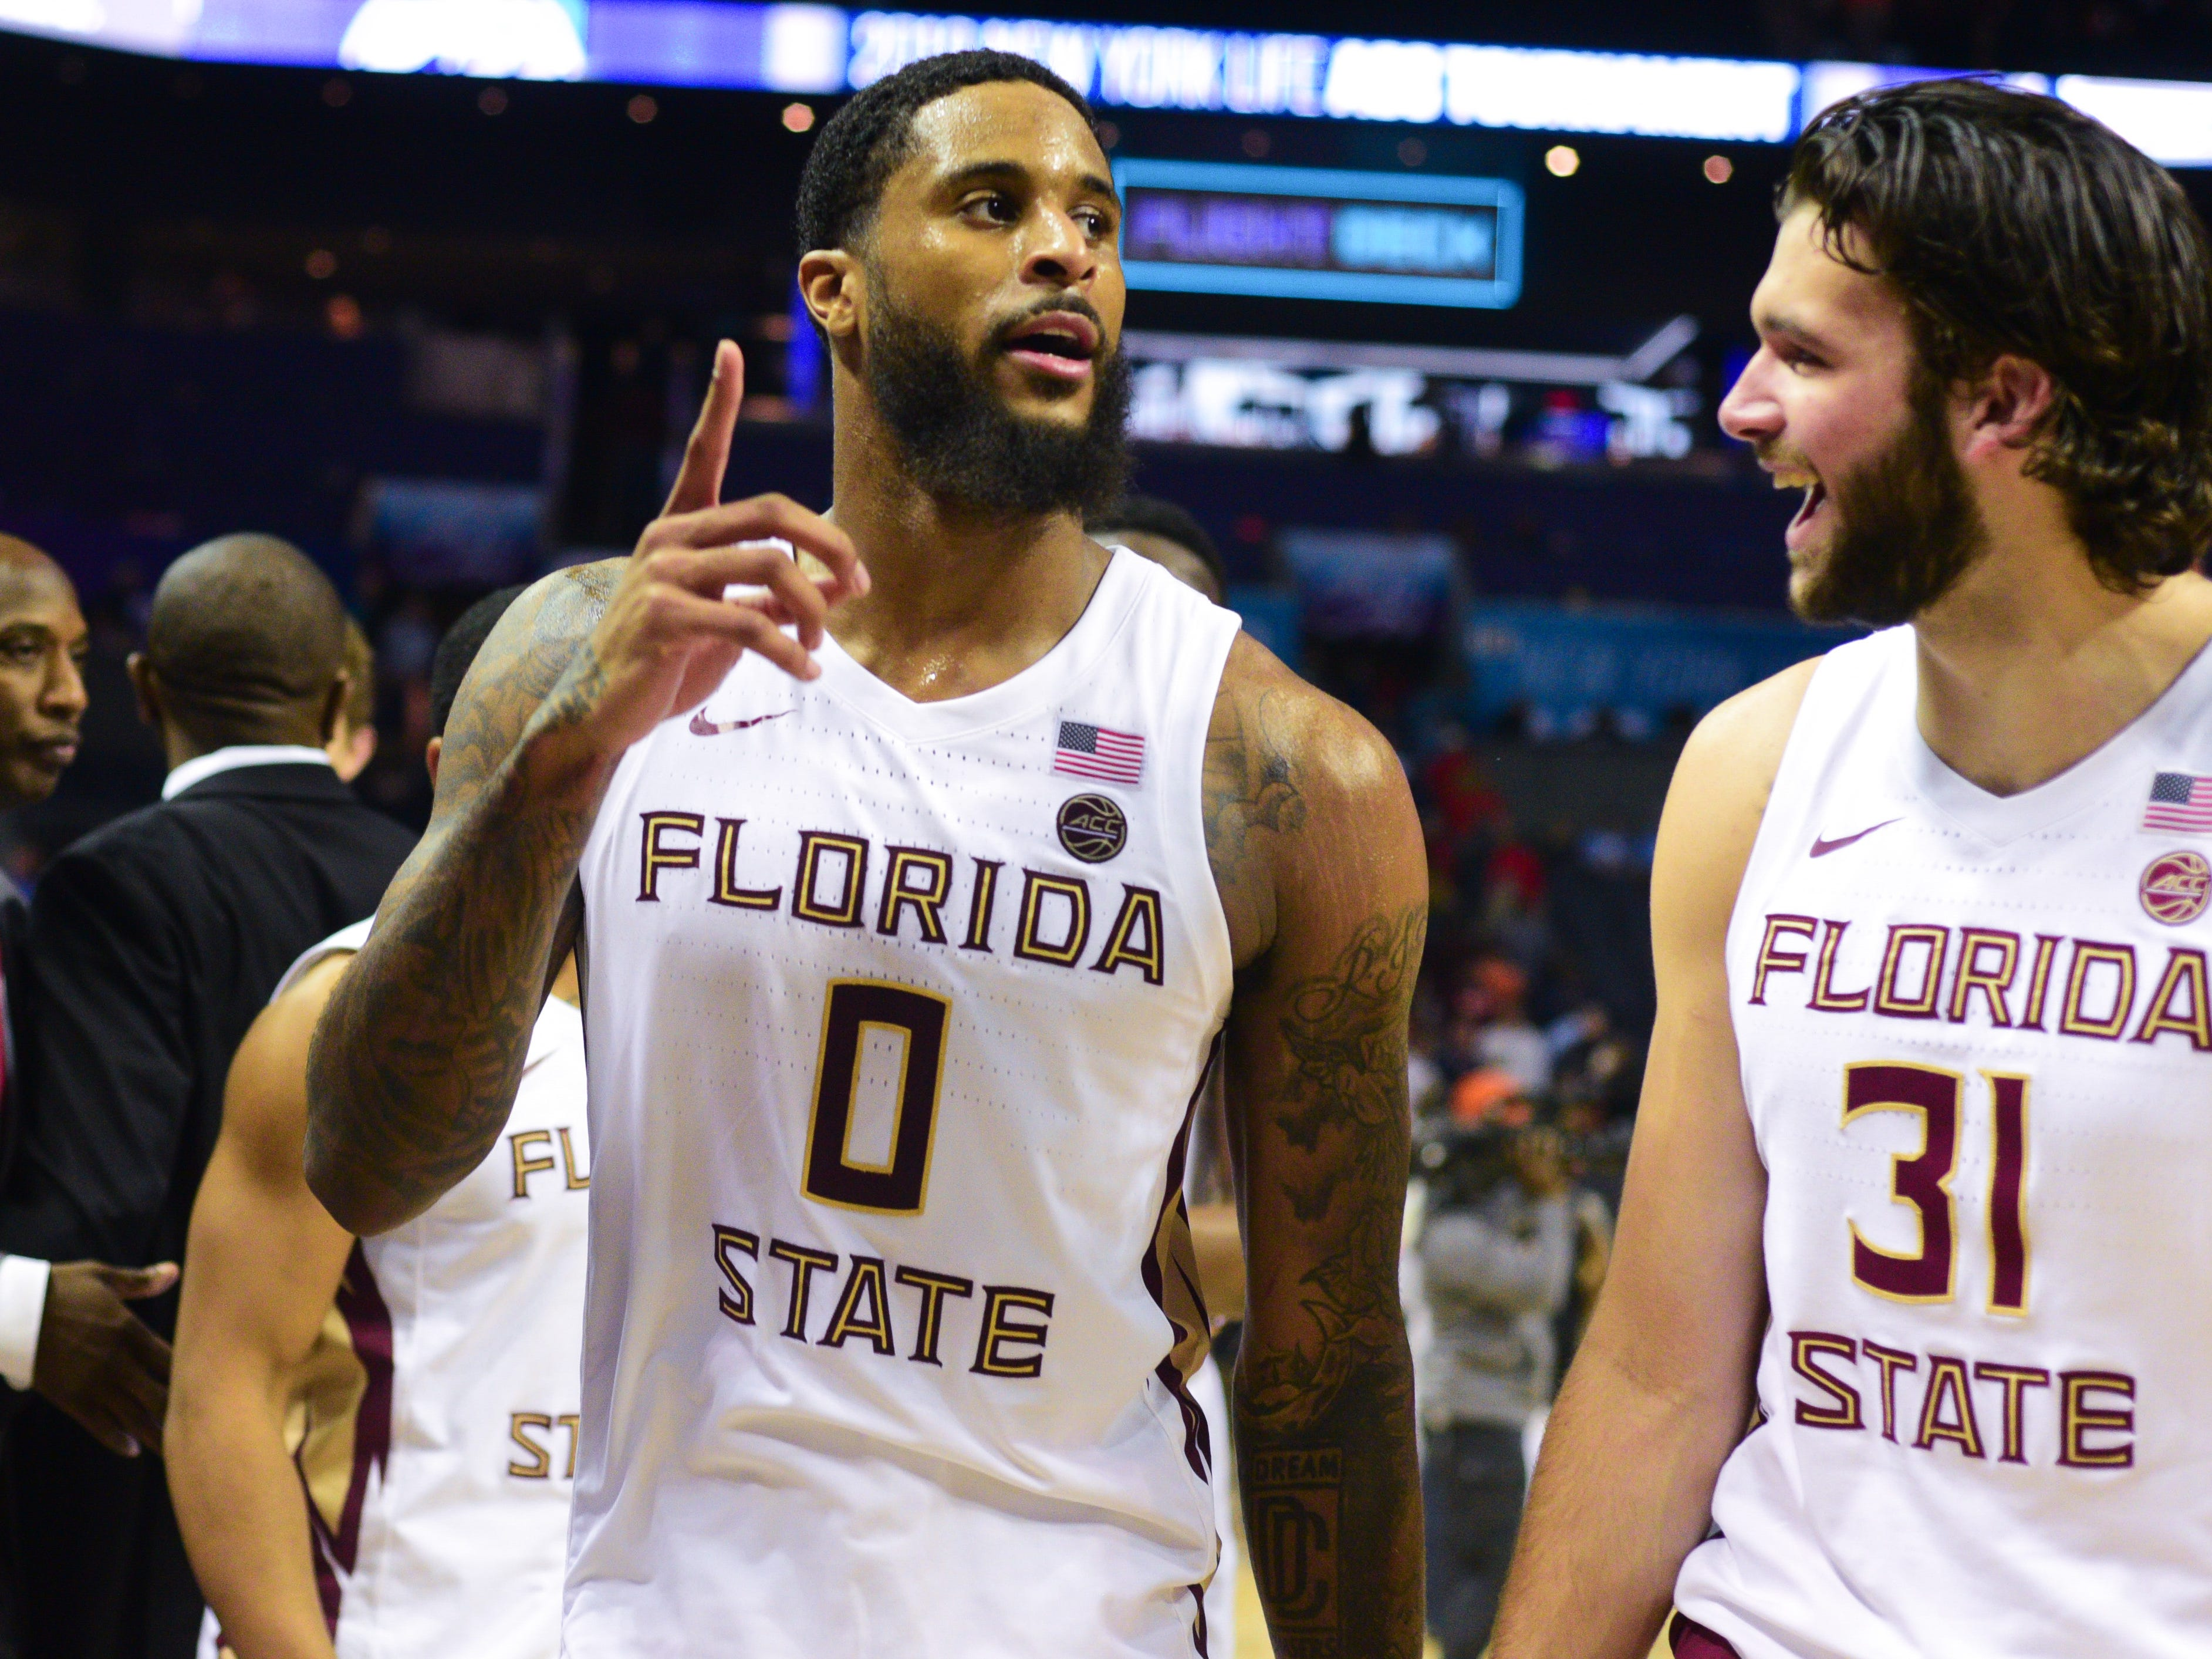 Redshirt senior forward Phil Cofer, left, and sophomore forward Wyatt Wilkes, right, celebrate the Seminoles 65-53 victory over the Virginia Tech Hokies in the ACC Quarterfinal game in Charlotte on Thursday.